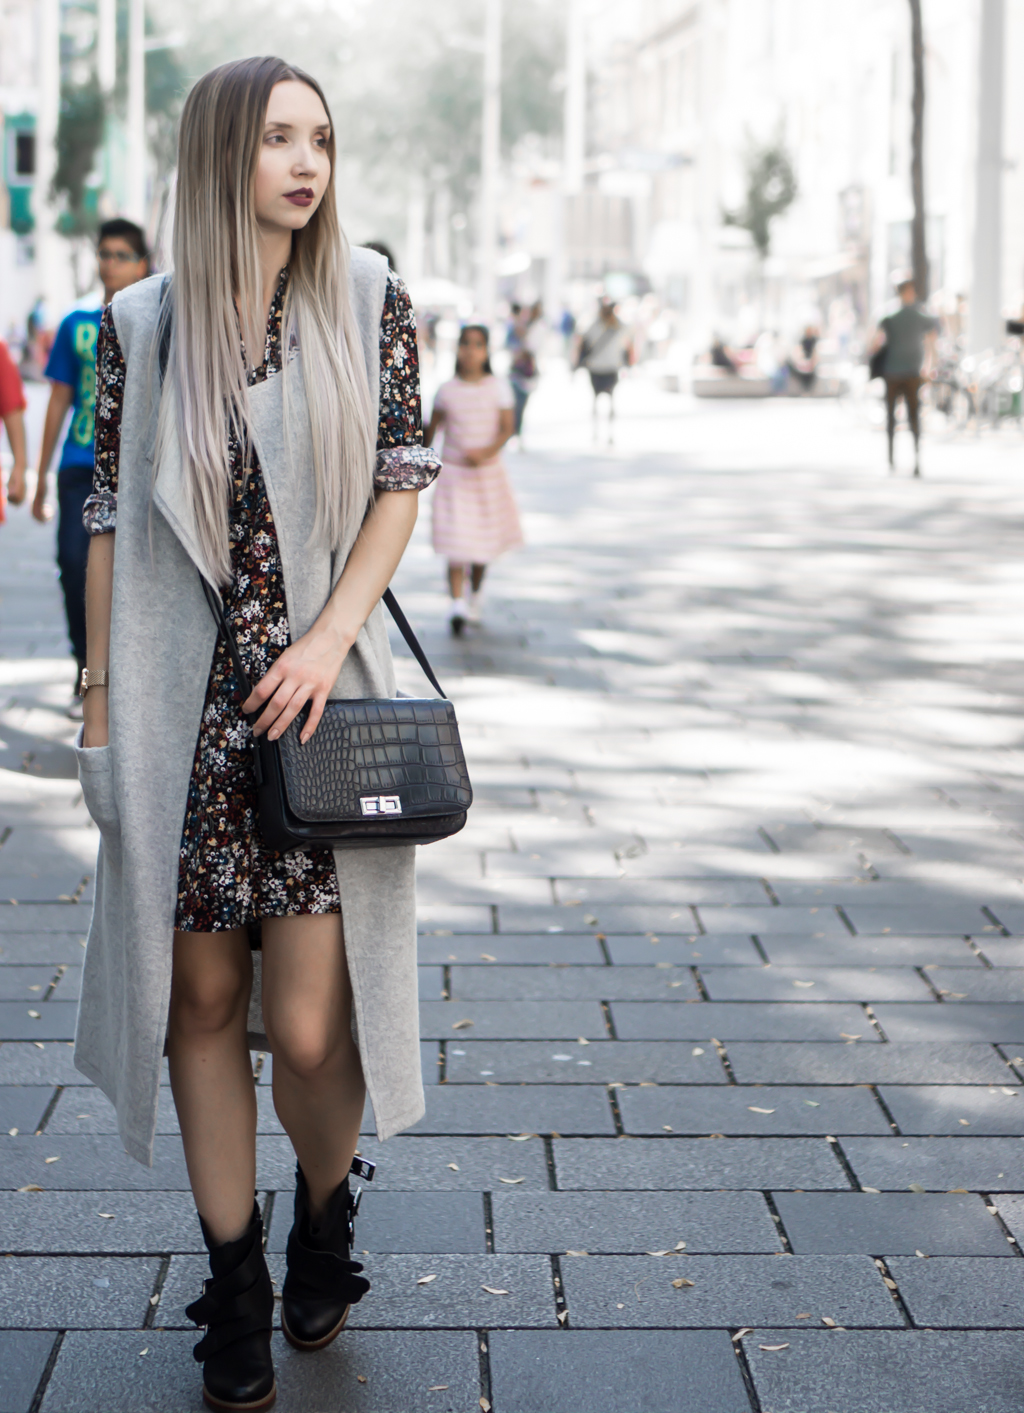 Floral Print in Fall/Winter